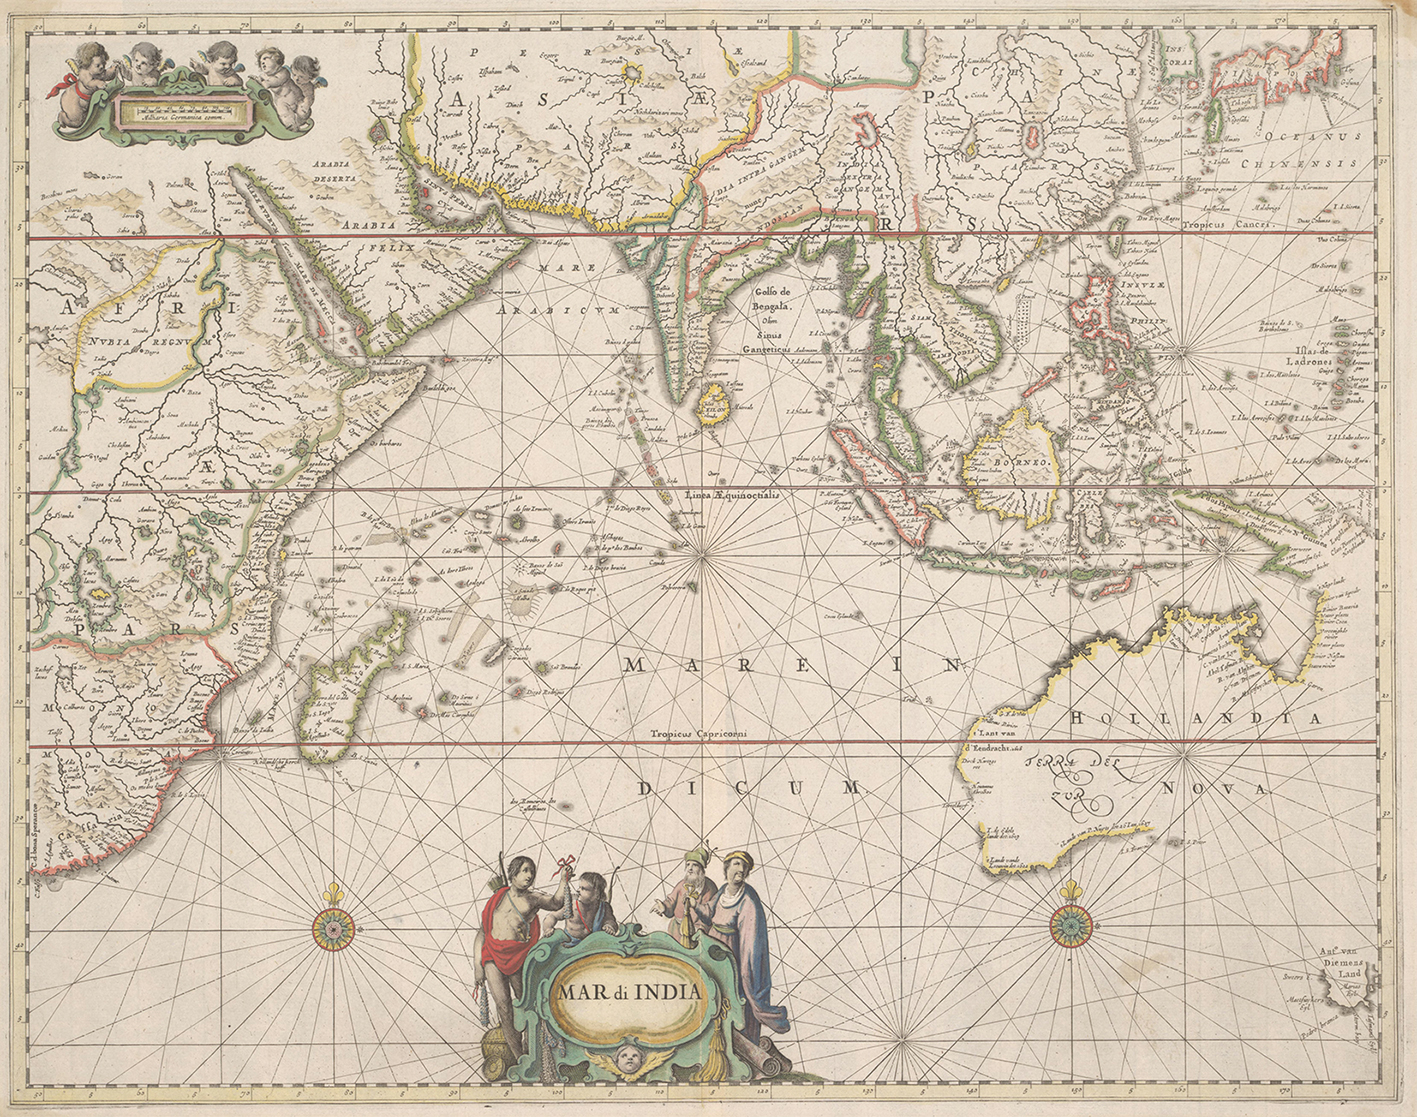 """Mar di India: Detail from The Sea Atlas by Hendrik Donker 1659 after Jan Jansson. Charts like this were included in Endeavour's Library. At the bottom of the chart, under a fanciful coastline, are the evocative words """"Promontorium Terra Australis"""" and """"Terra Australis Incognita"""", indicating the prevailing idea that a great southern continent must lie undiscovered at the bottom of the world. Mar di India does however show the recognisable shape of the western coast of Western Australia or Terra del Zur as it was then known to the Dutch."""